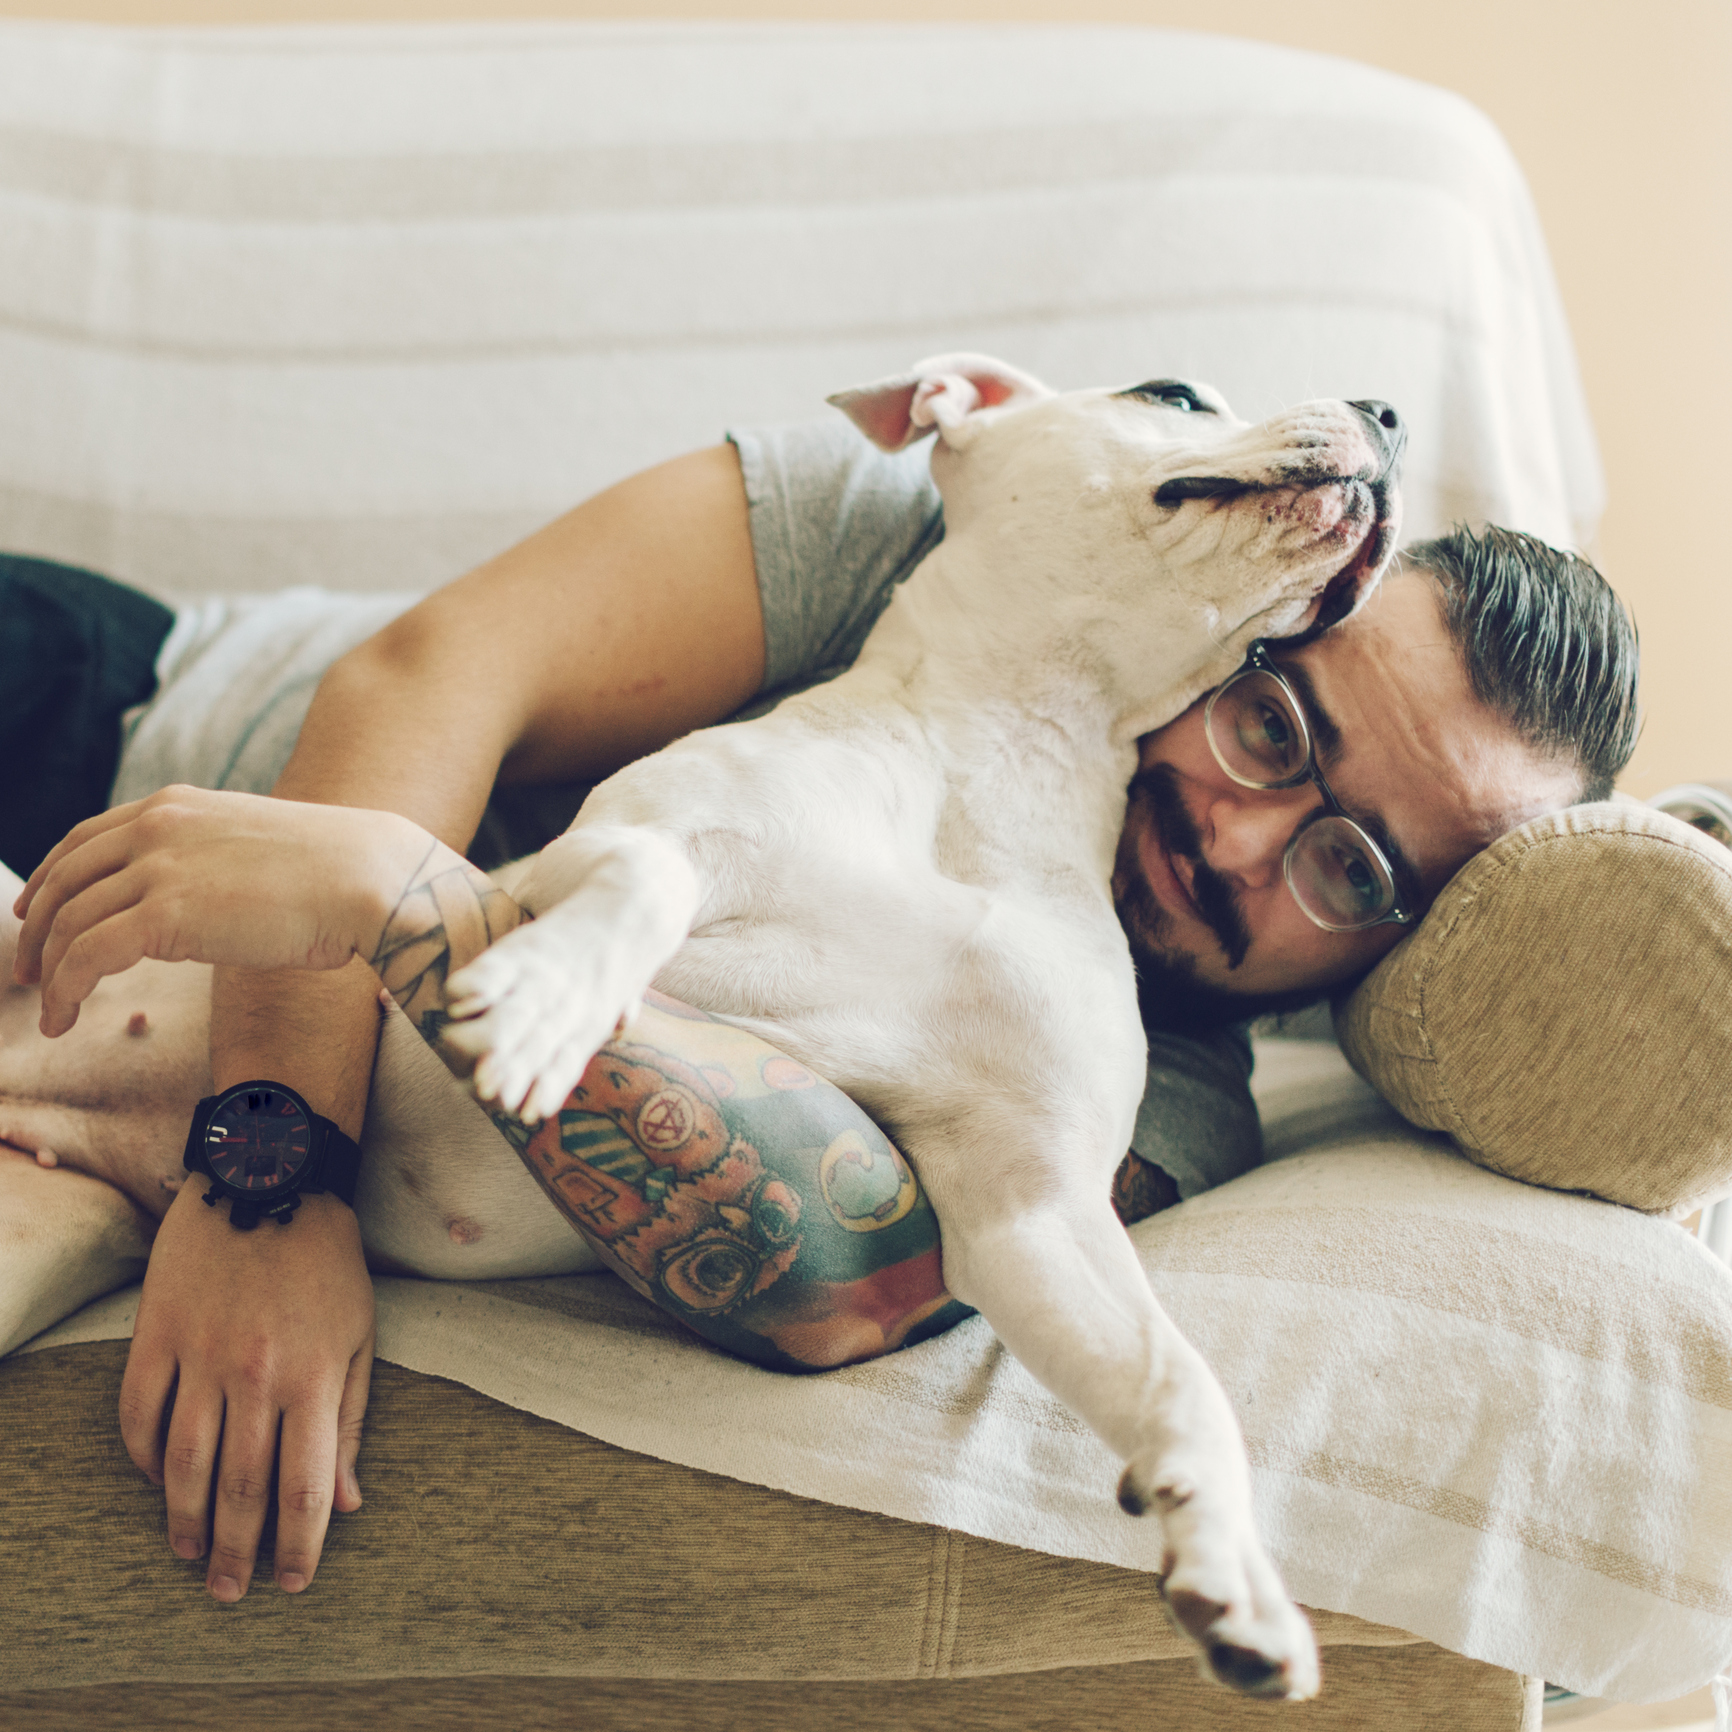 Unconditional love from a pet can bring so much joy to your life.